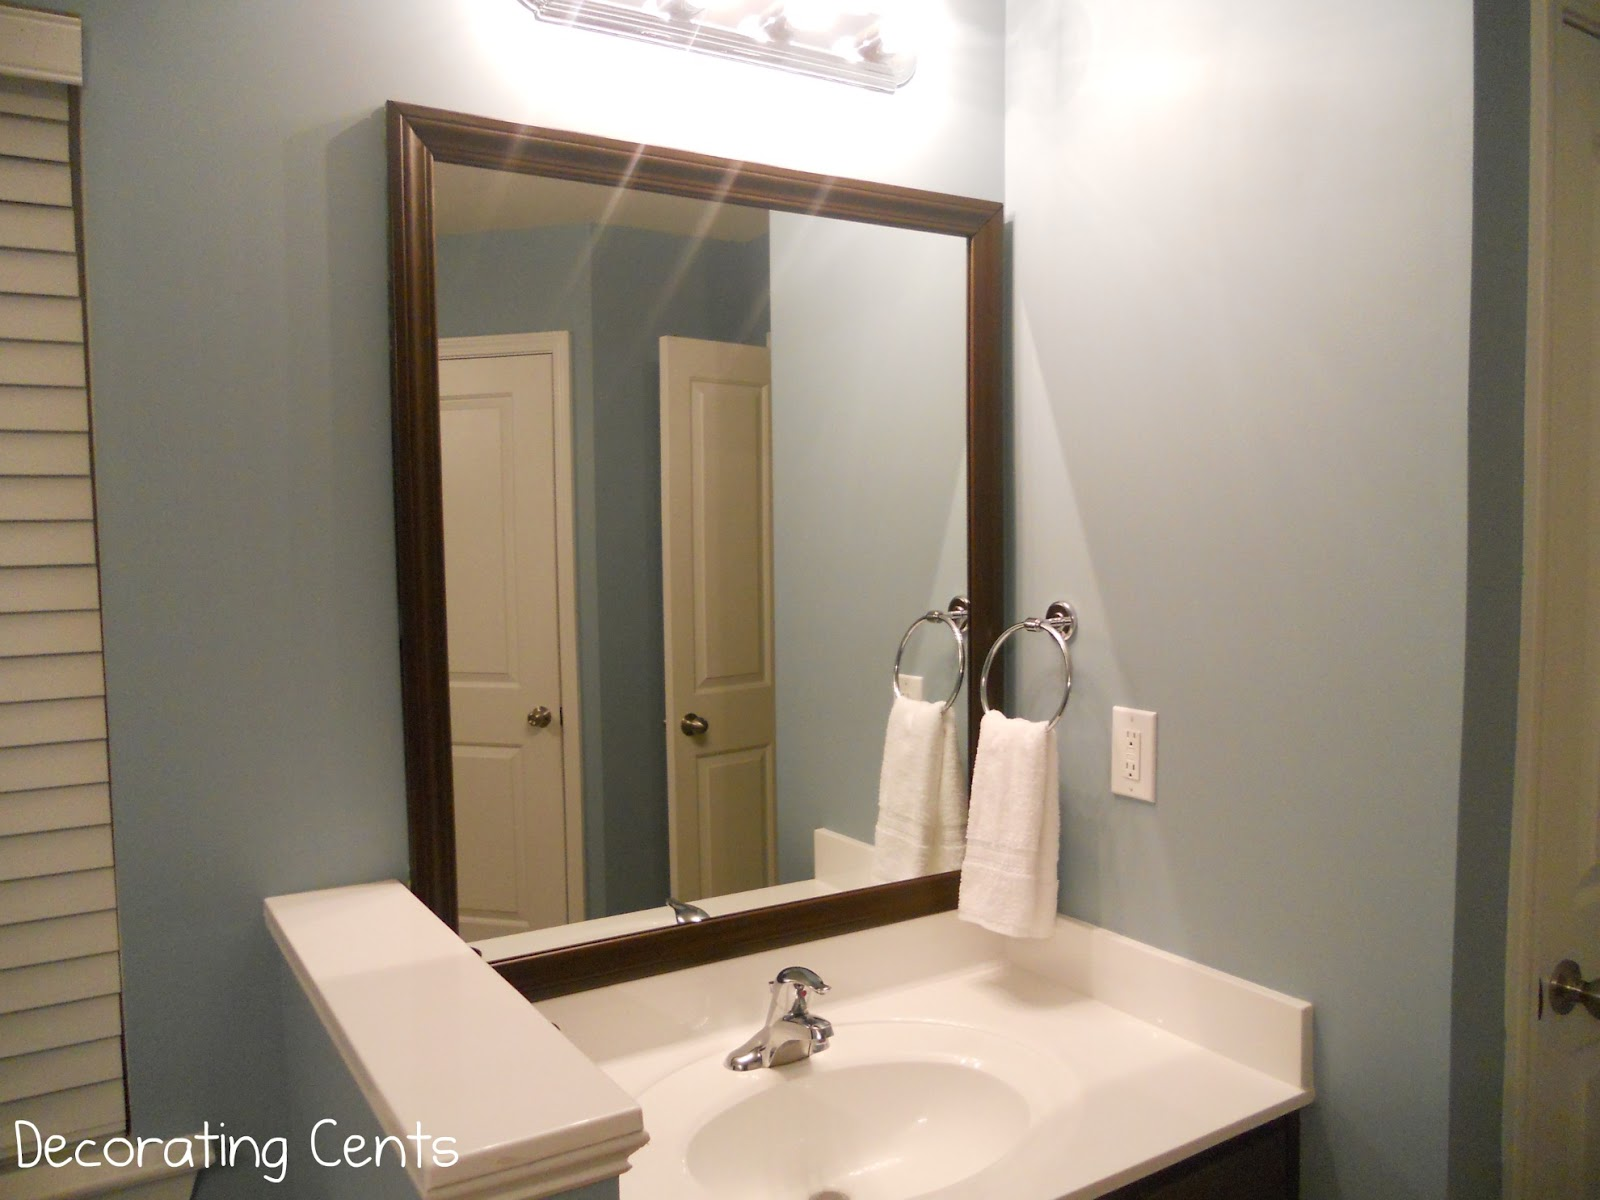 Mirror In The Bathroom Stunning Decorating Cents Framing The Bathroom Mirrors Decorating Design